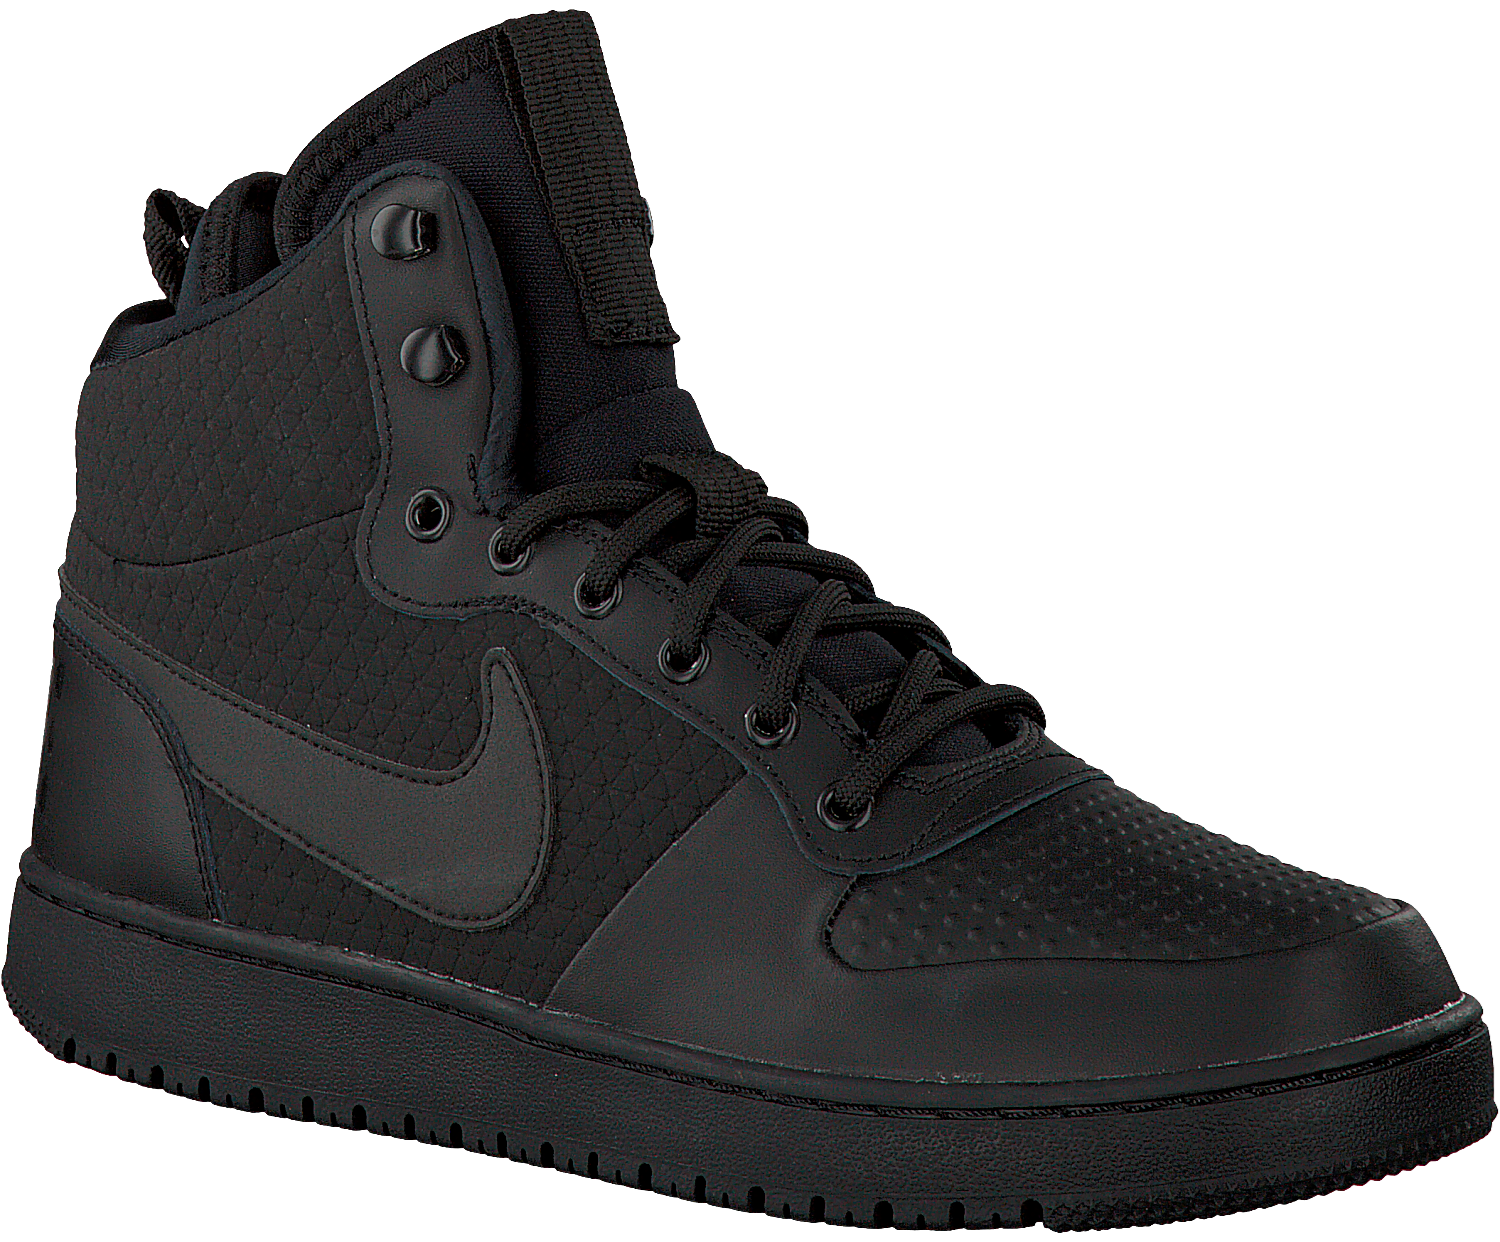 new style d0ed8 93ef3 Black NIKE Sneakers COURT BOROUGH MID WINTER